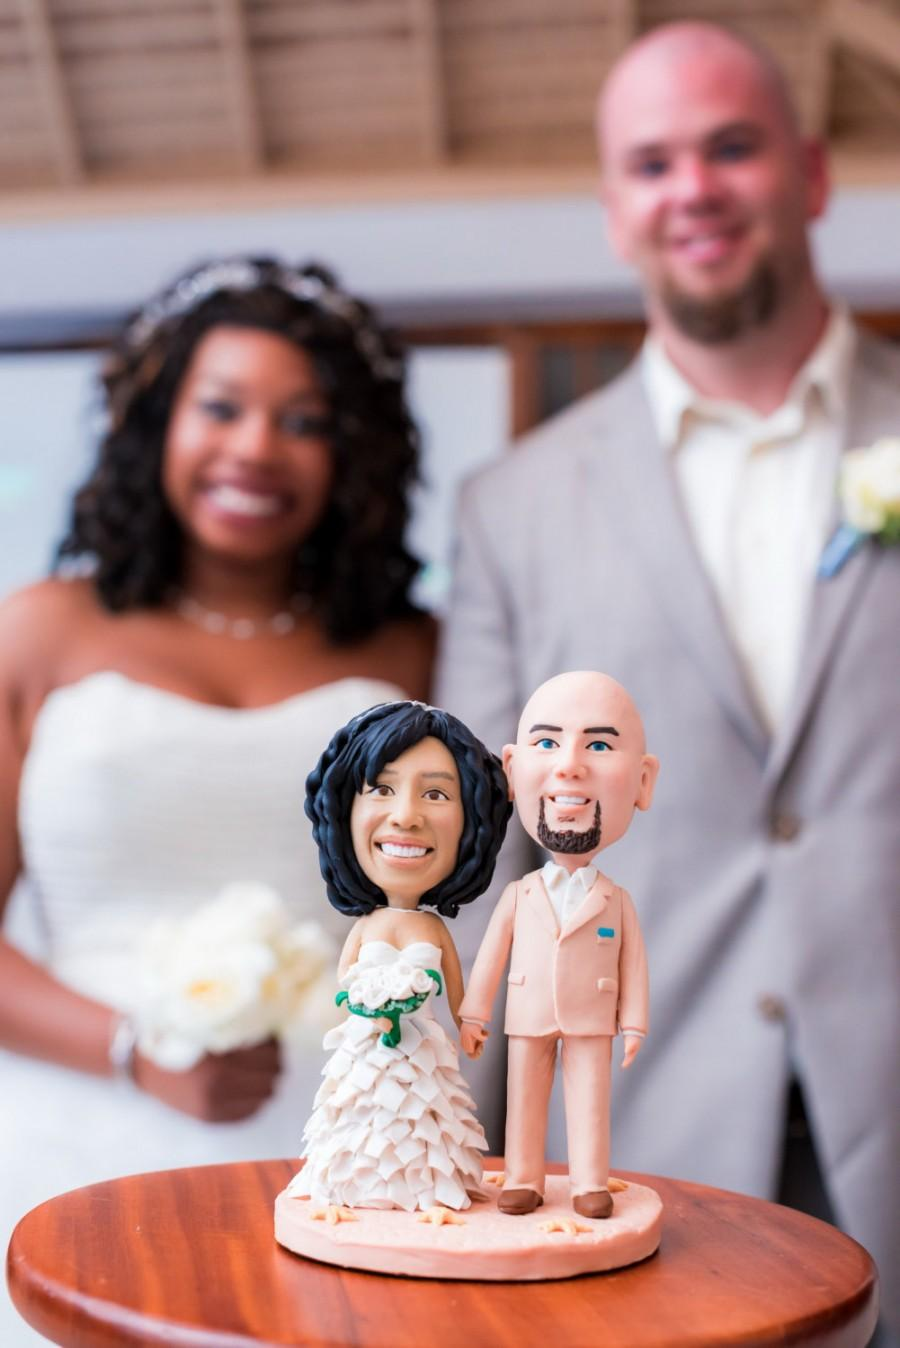 Interracial bobble head wedding toppers